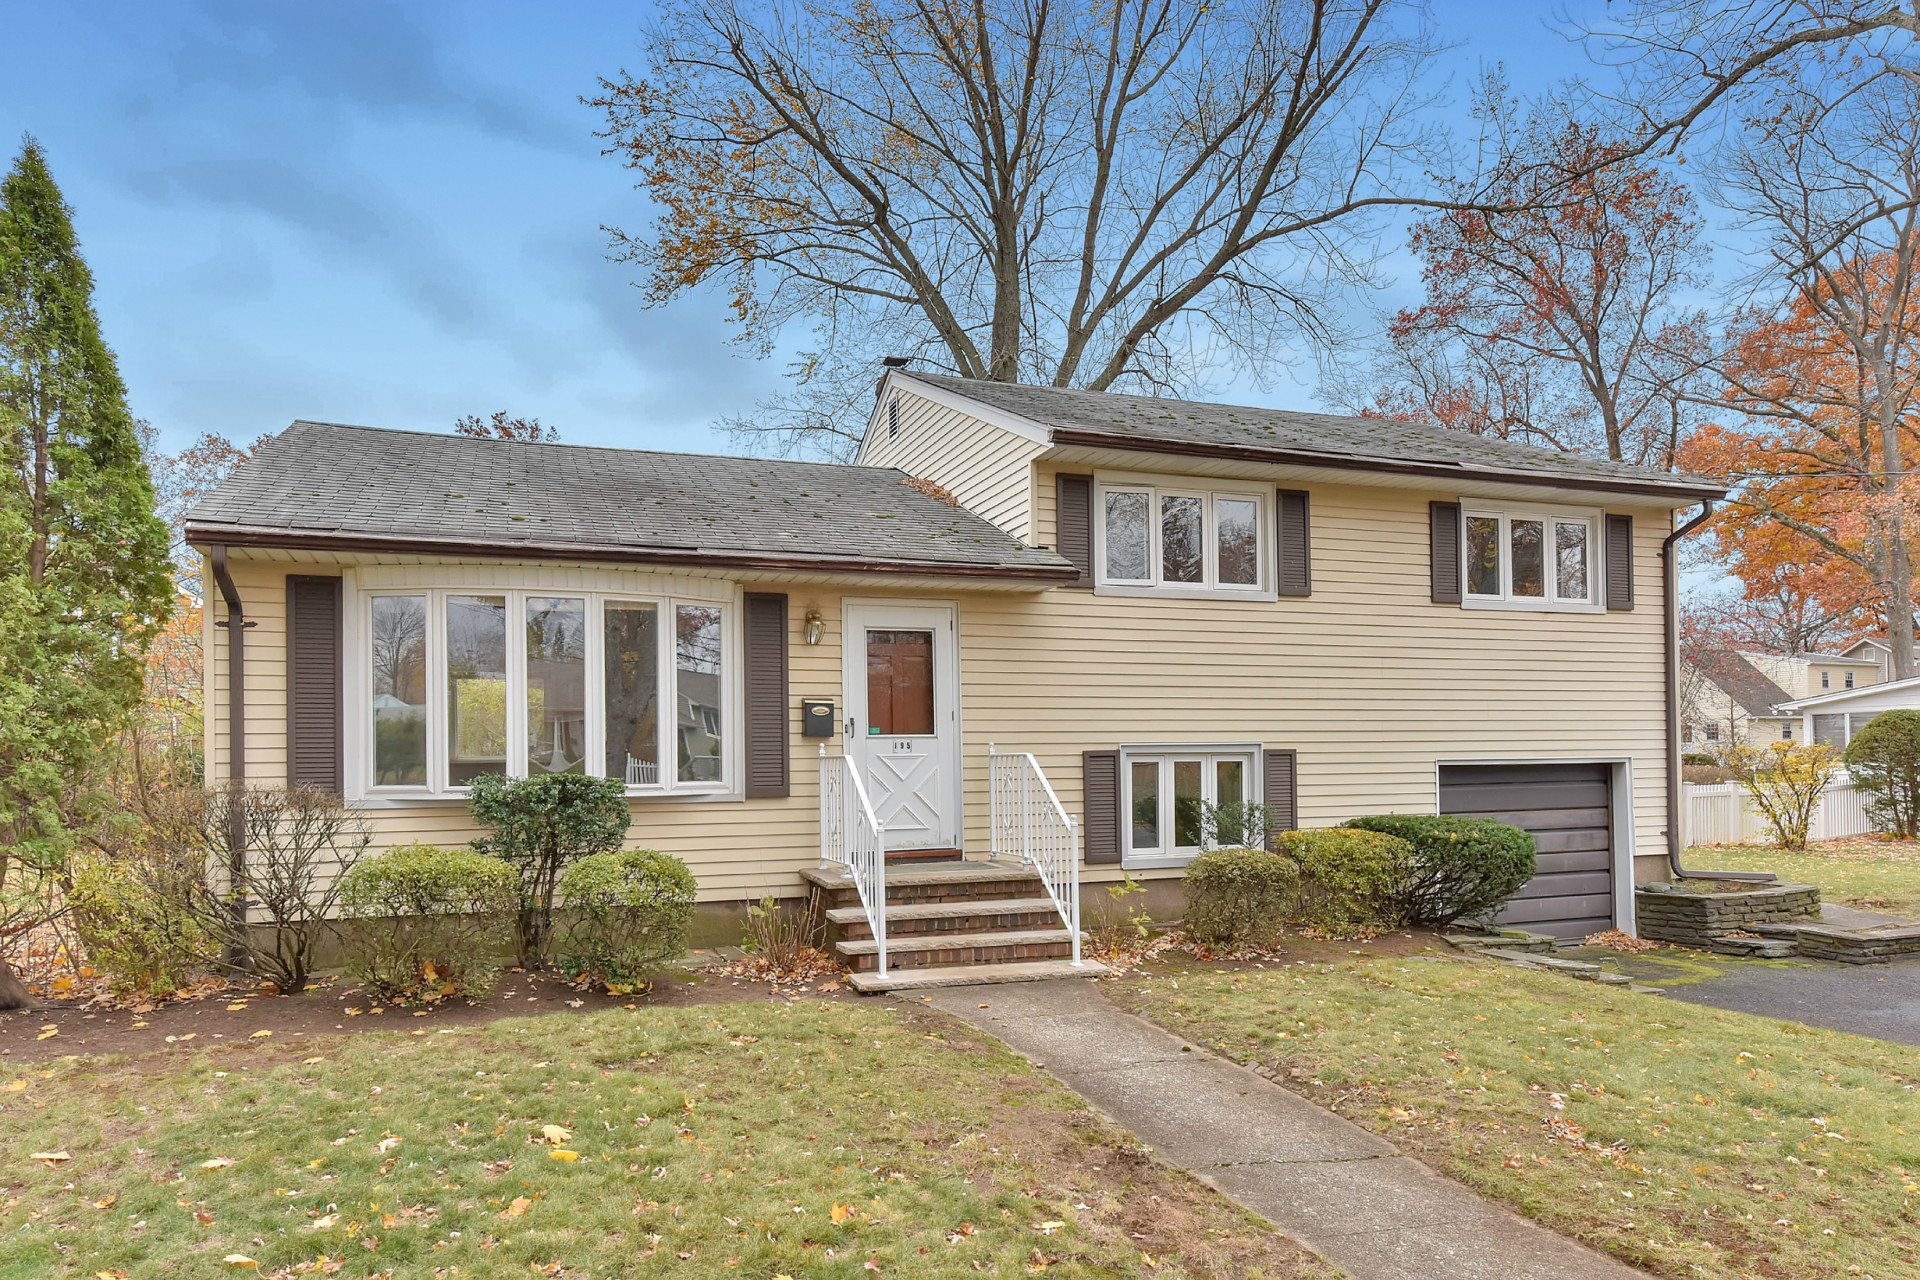 Single Family Home for Sale at Move In Ready Split Level 195 Randolph Ave Dumont, 07628 United States